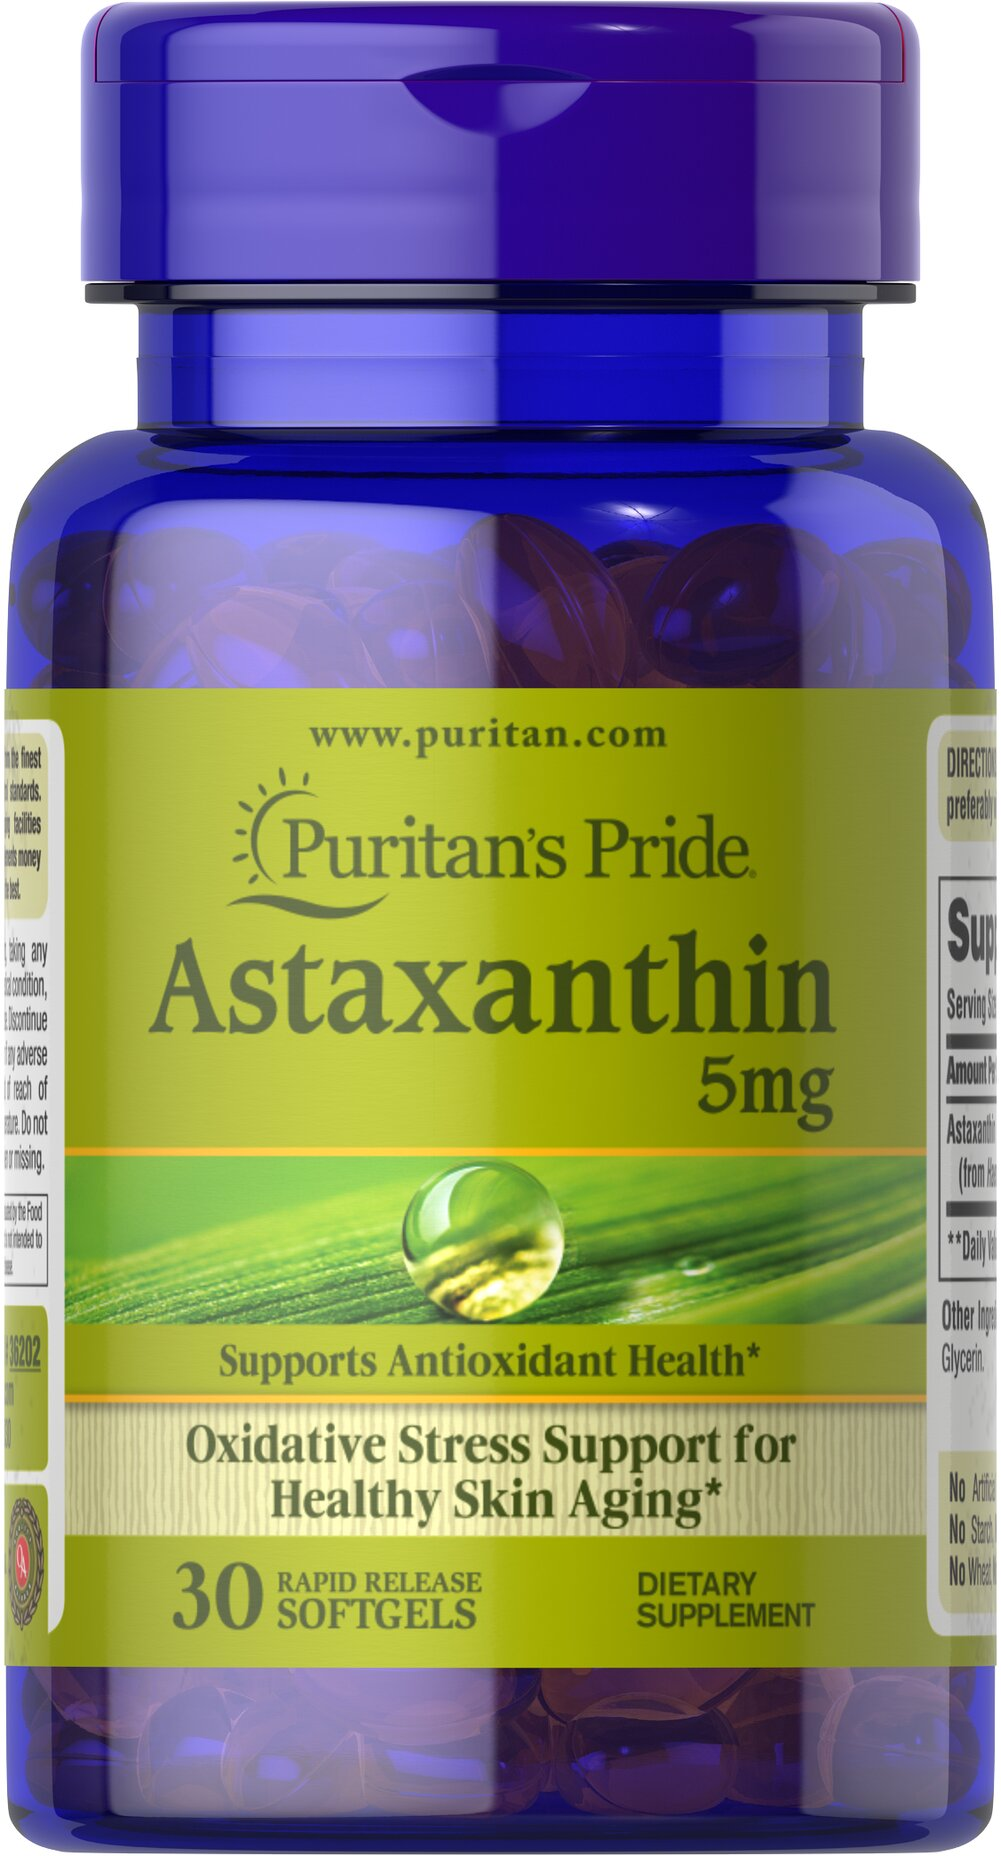 Natural Astaxanthin 5 mg <p>Astaxanthin promotes antioxidant health, which helps fight the cell damaging free radicals that can lead to oxidative stress which may contribute to the premature aging of cells.**</p><p></p><p></p> 30 Softgels 5 mg $22.99